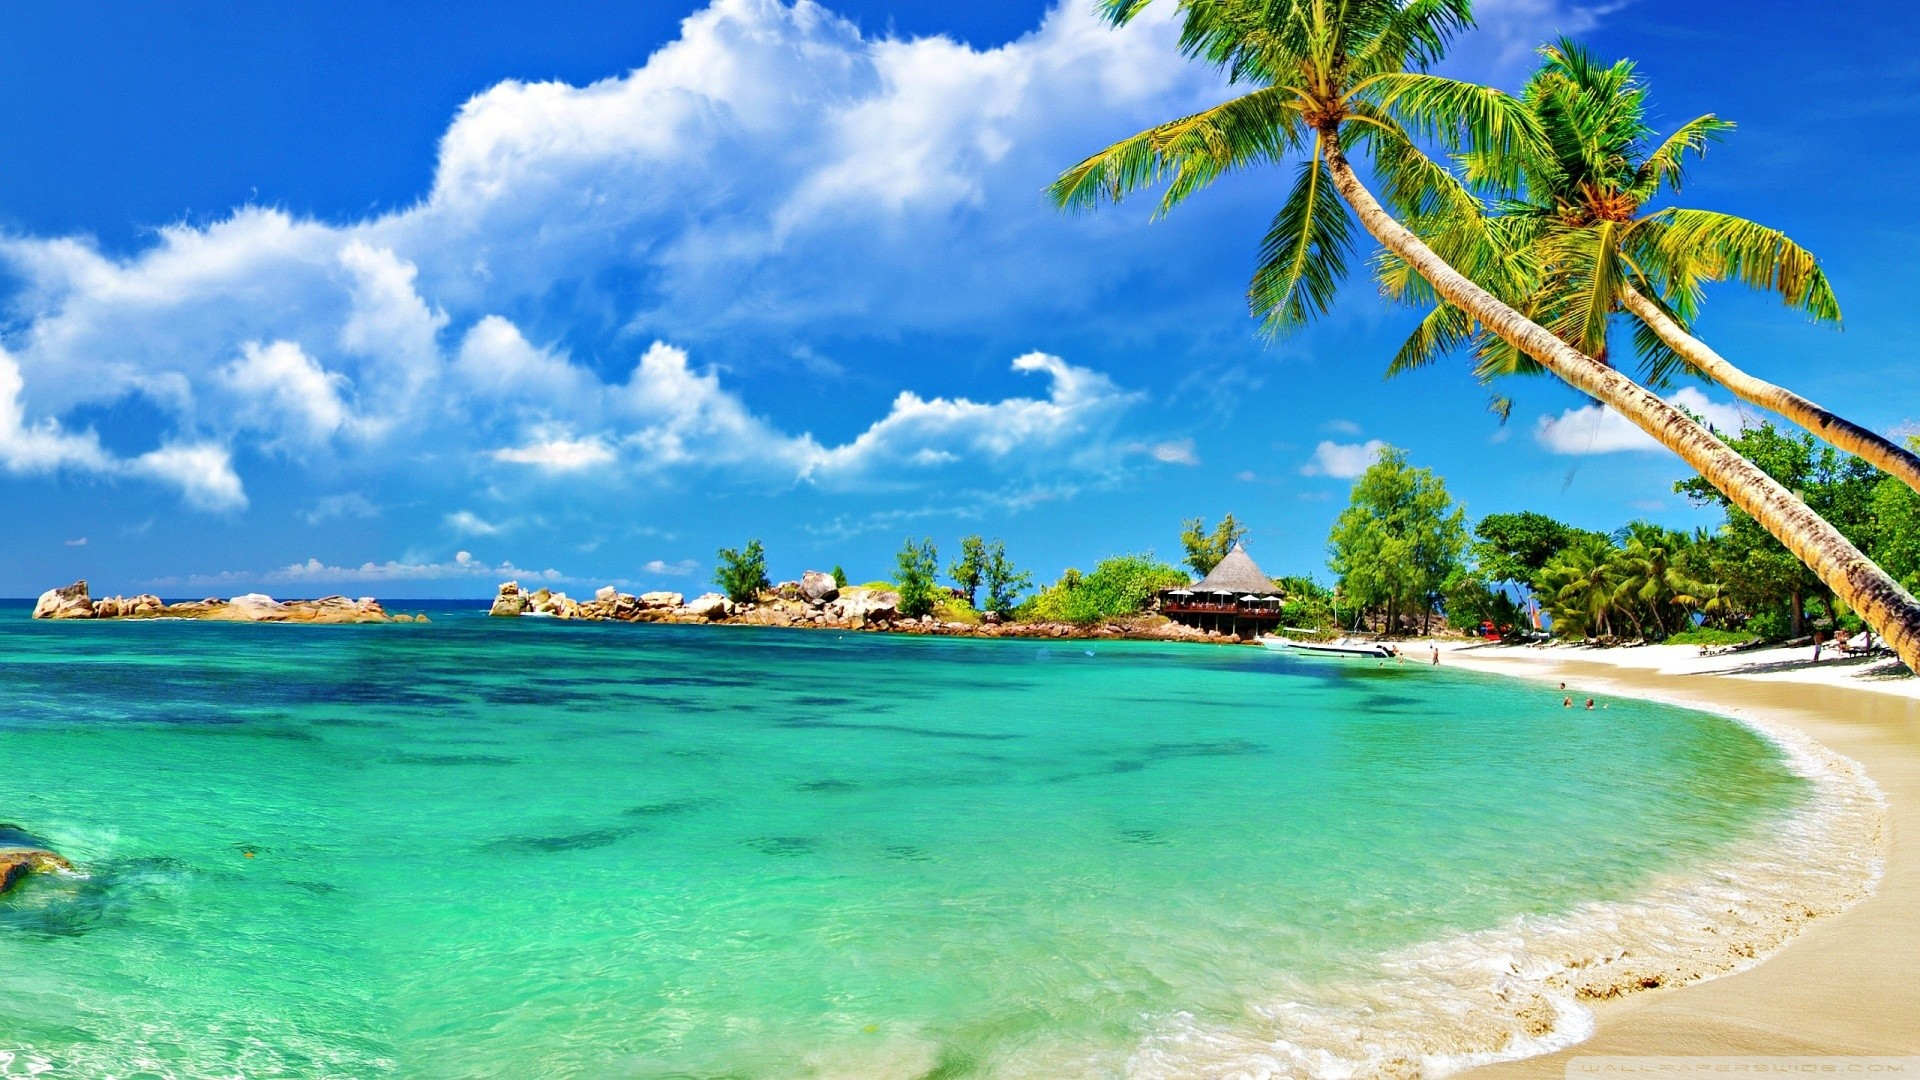 1920x1080 Tropical Beach Desktop Wallpaper 35752